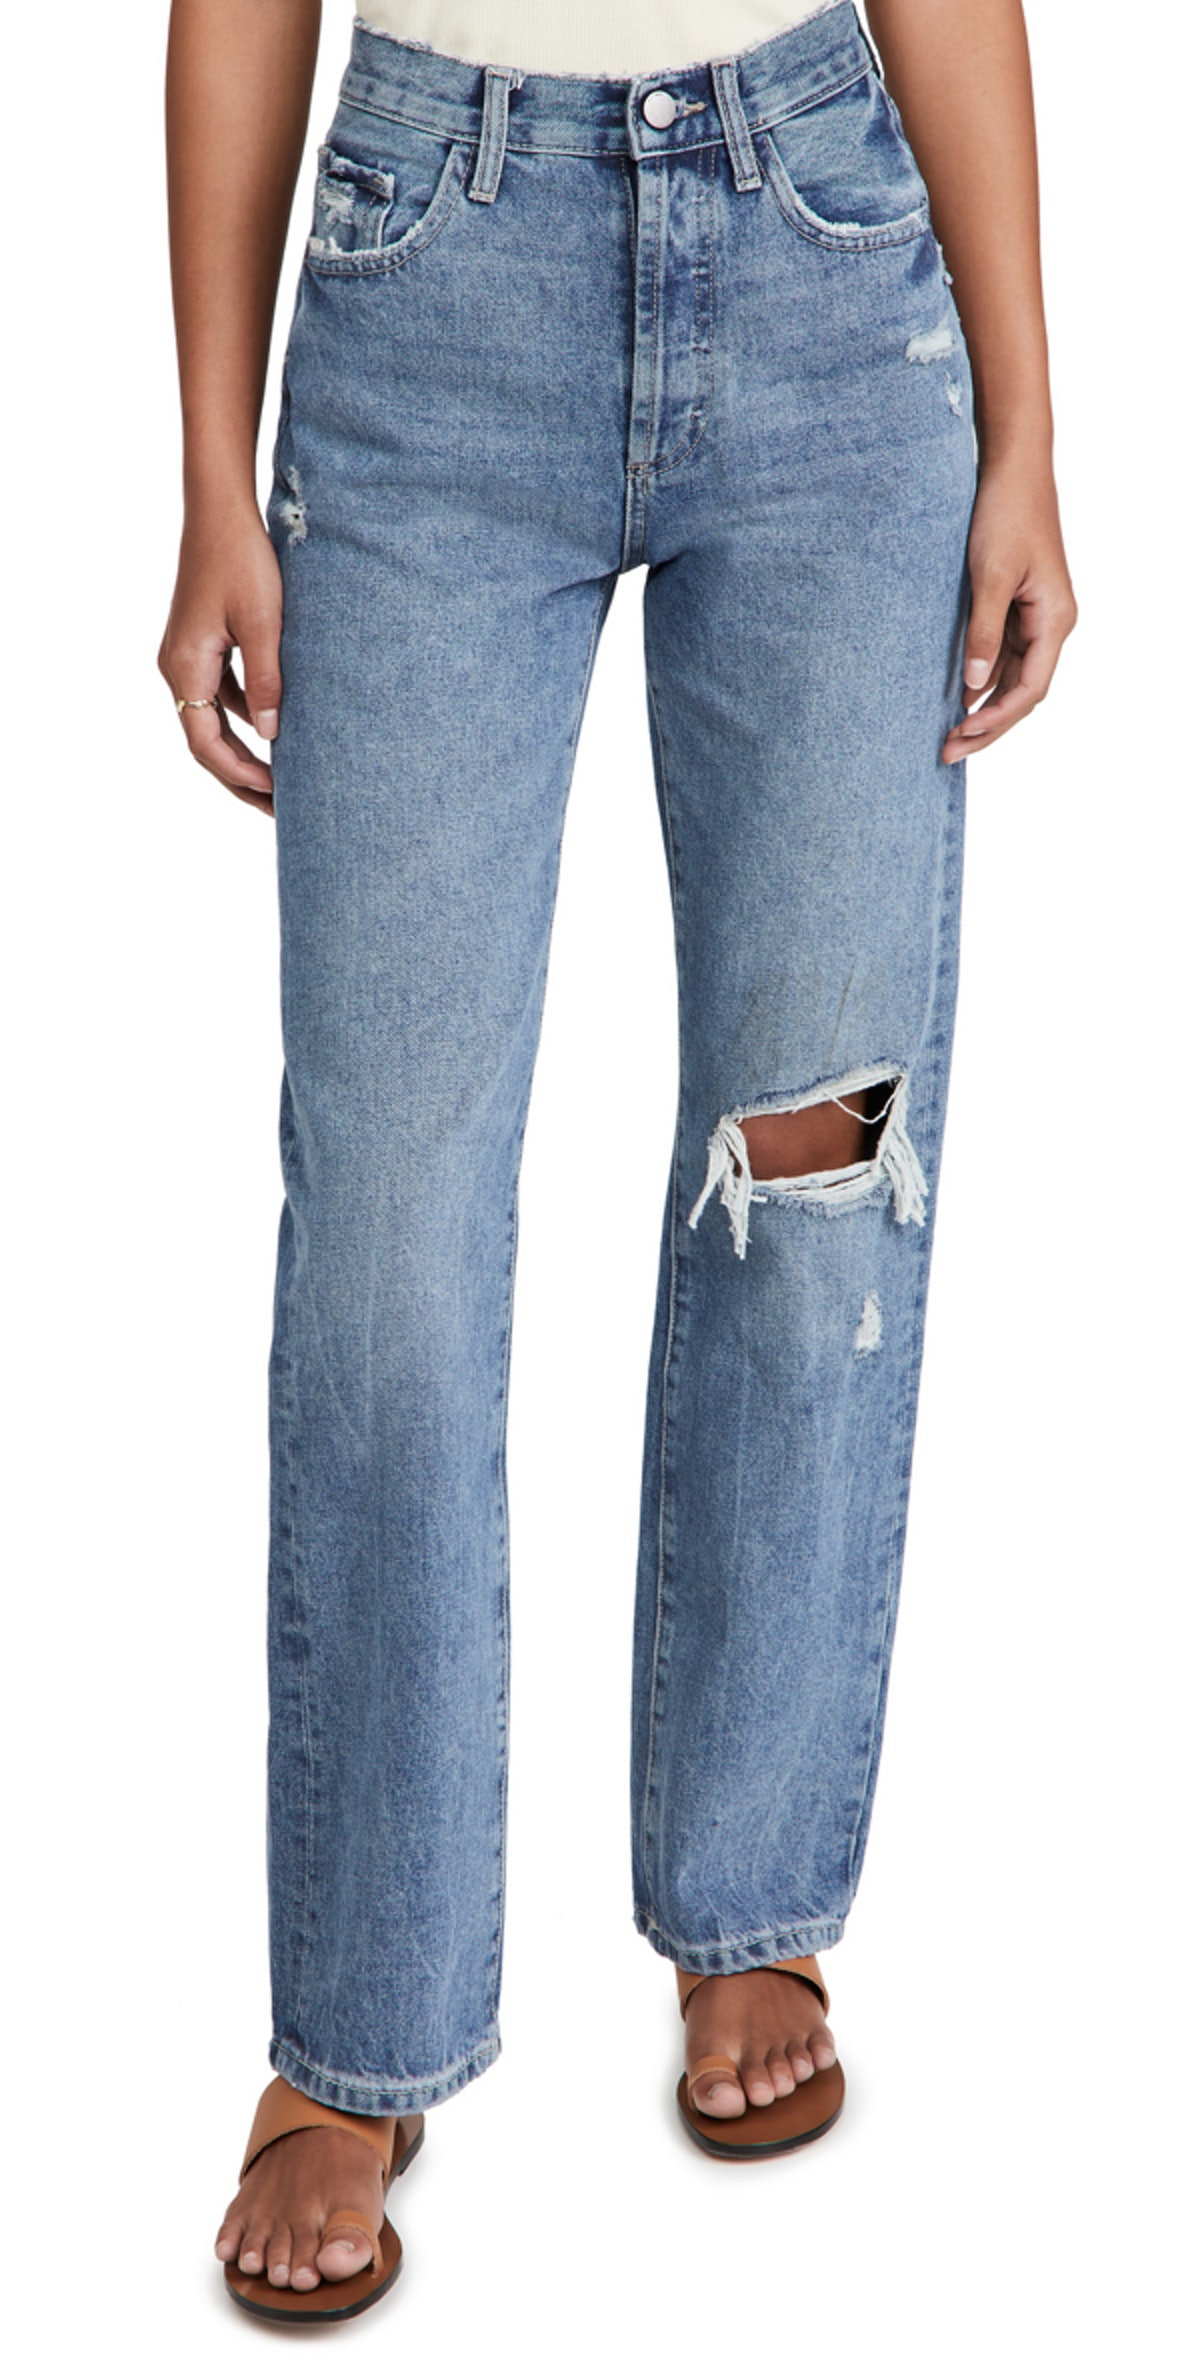 Women's Emilie Straight Ultra High Rise Vintage Jeans